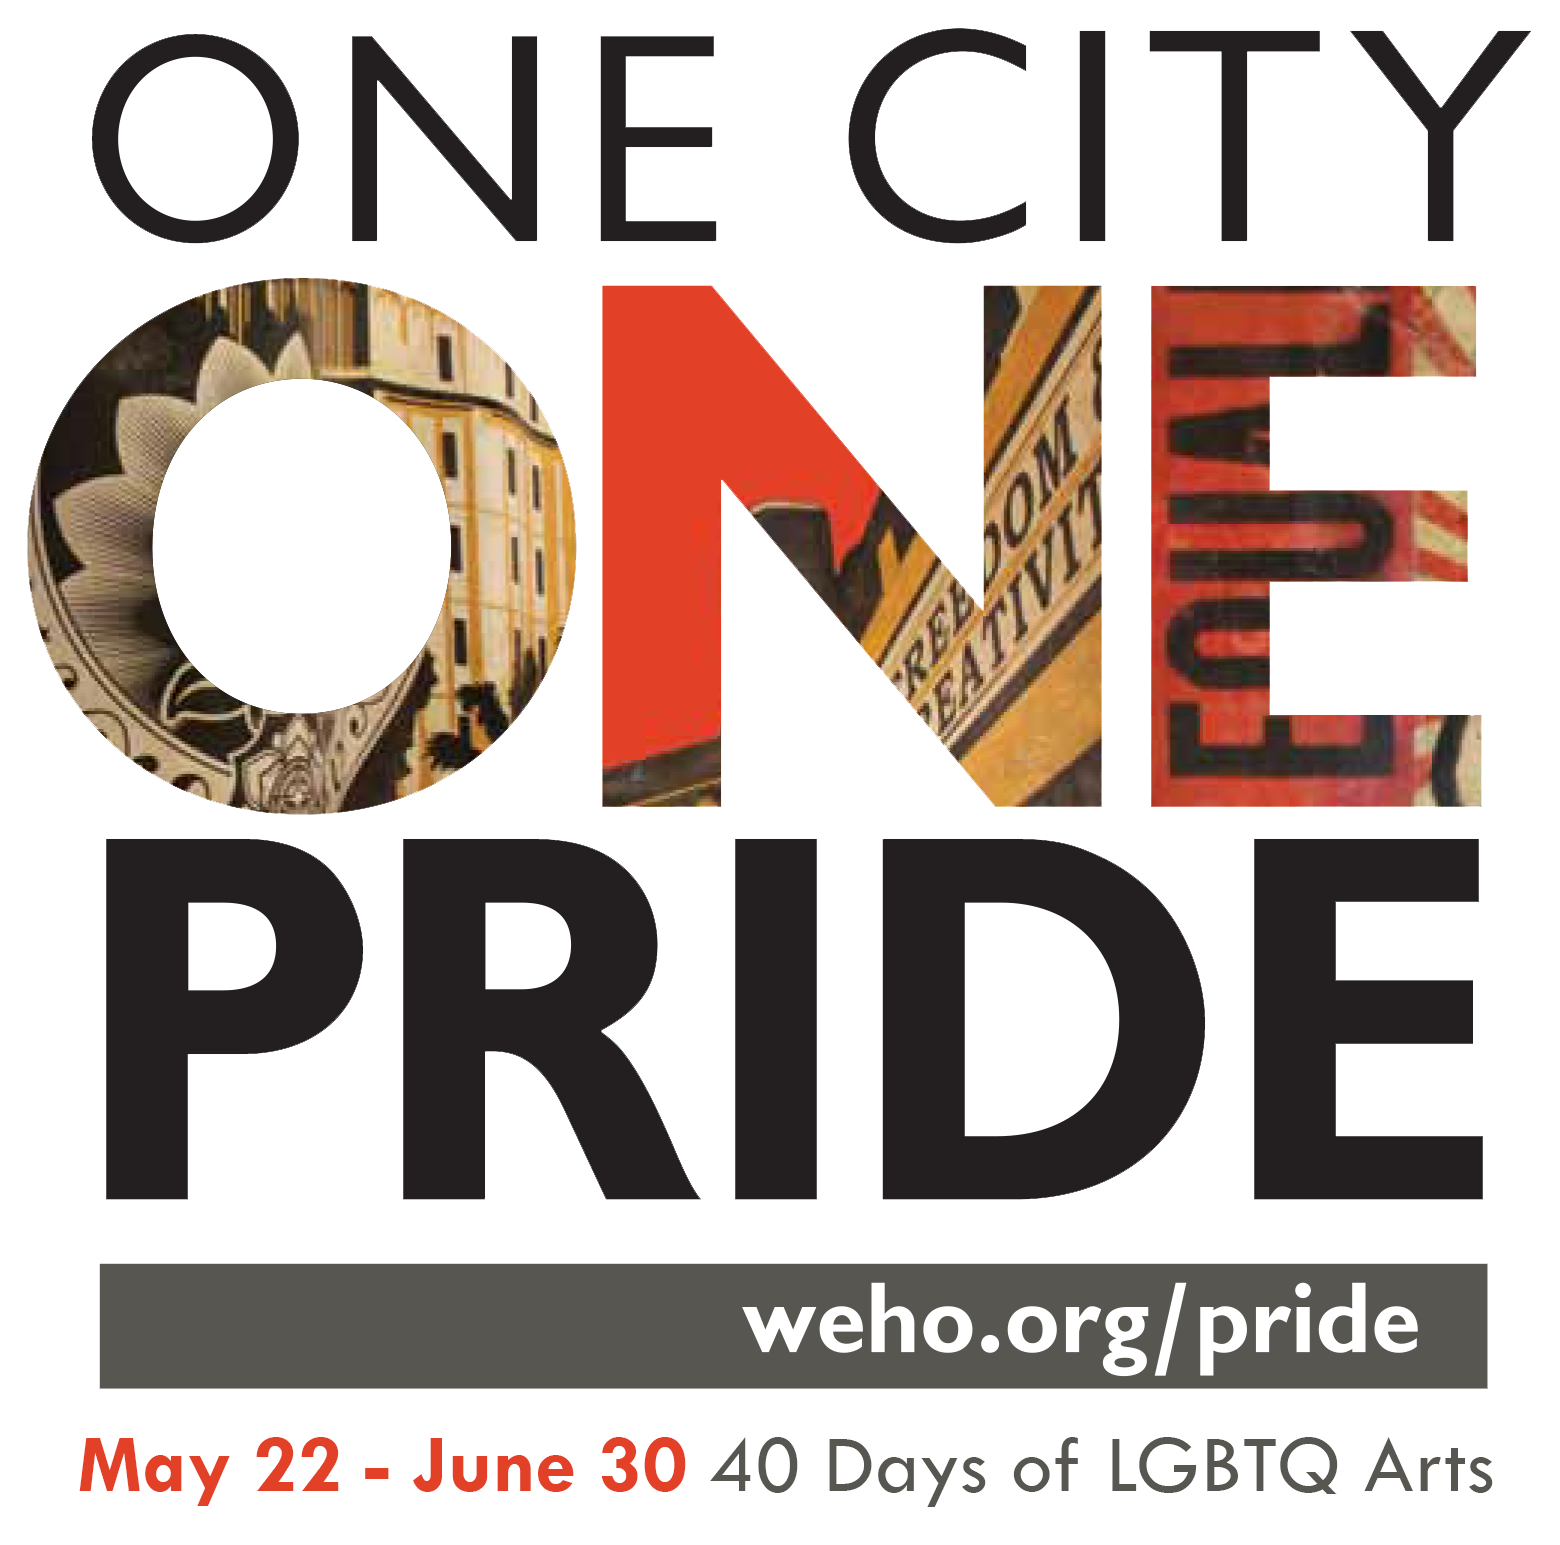 City's 'One City One Pride' LGBTQ Arts Festival Features a 'Virtual Platform' for Arts and Cultural ...